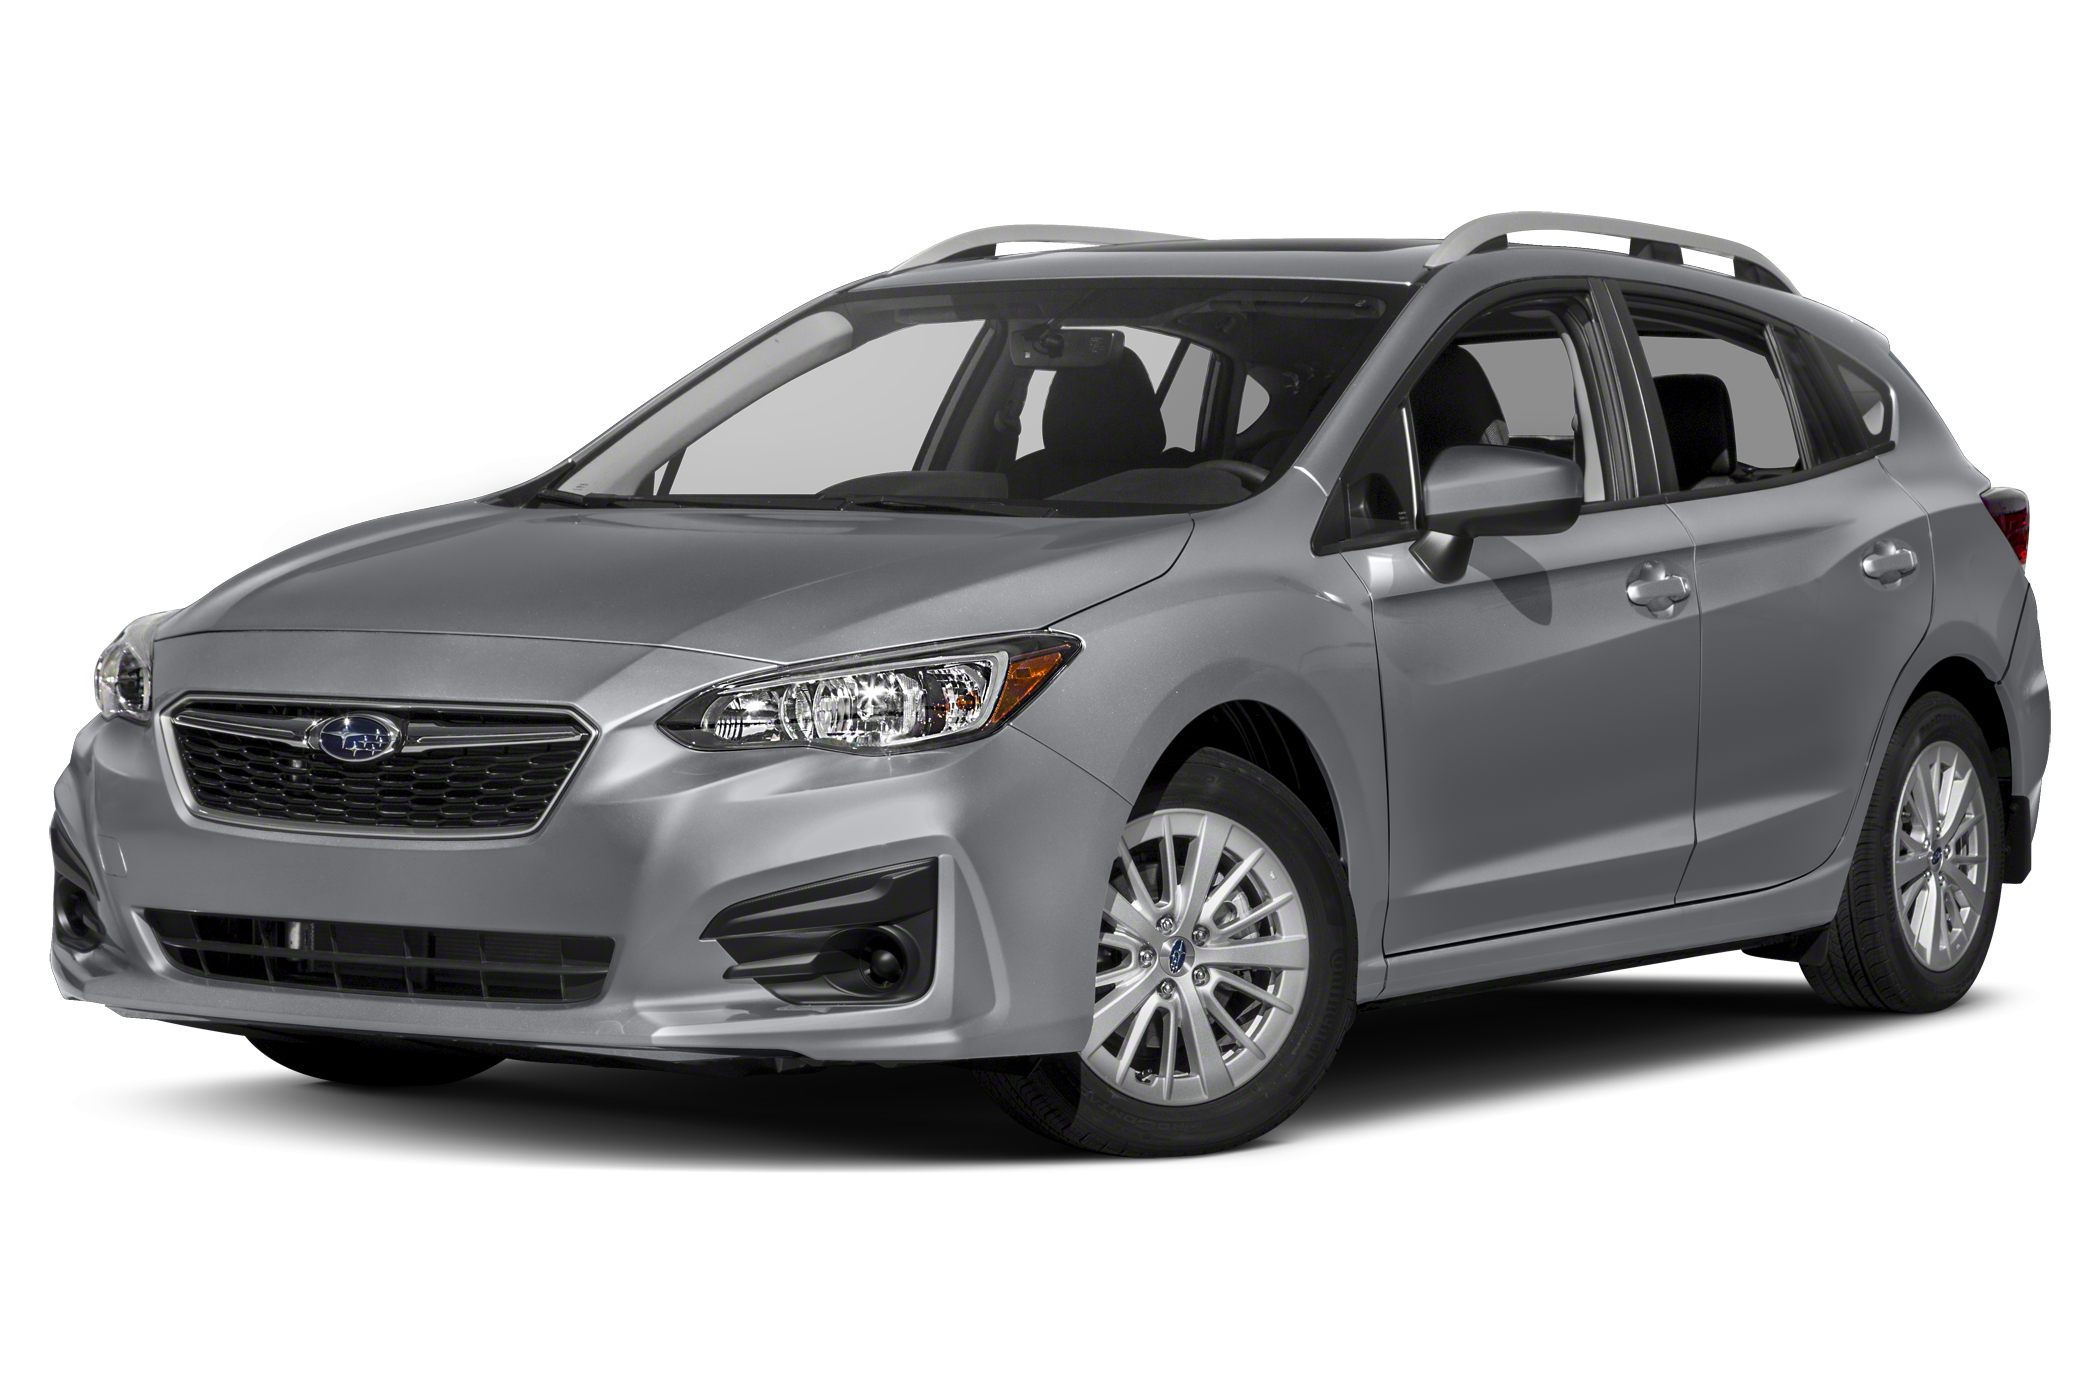 2017 Subaru Impreza 2.0i Premium 4dr All-wheel Drive Hatchback